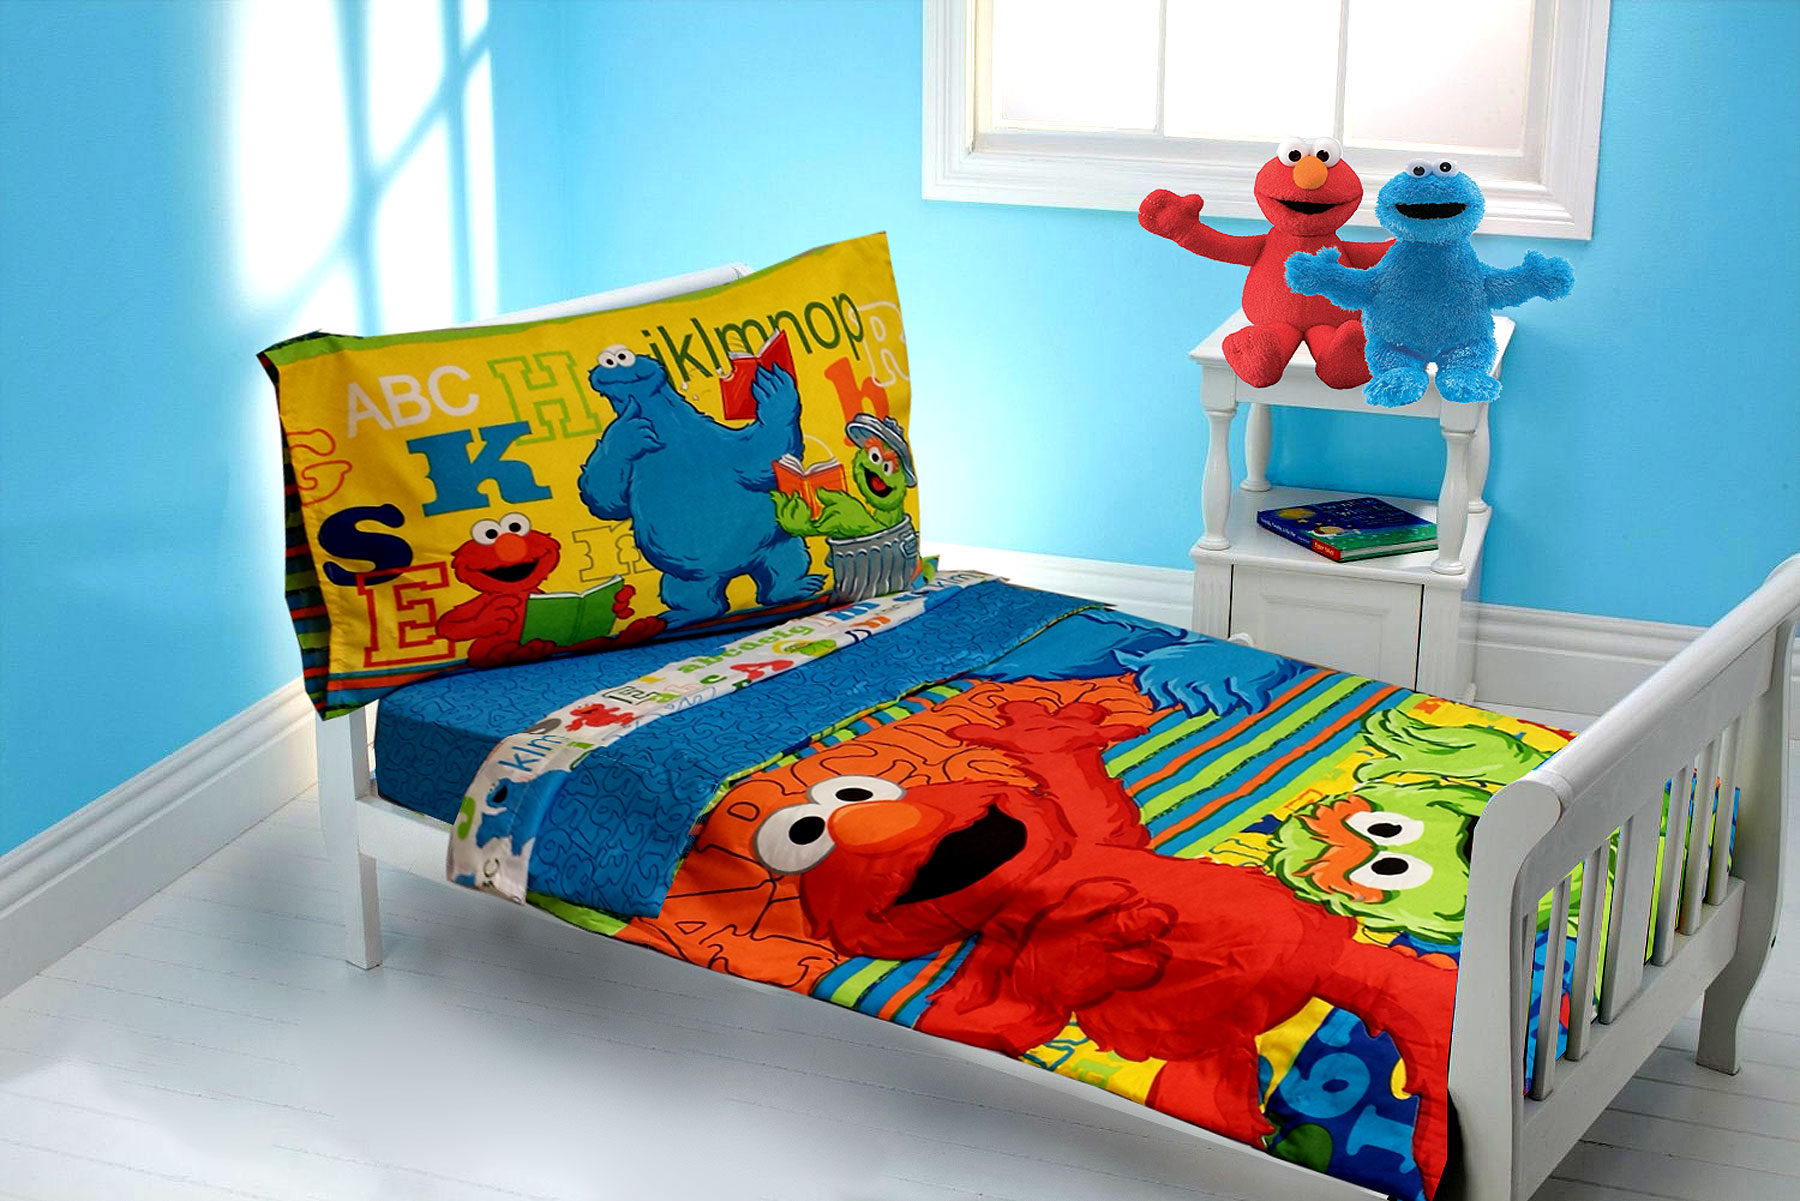 twin elmo sheets sesame street toddler bedding elmo abc 123 comforter